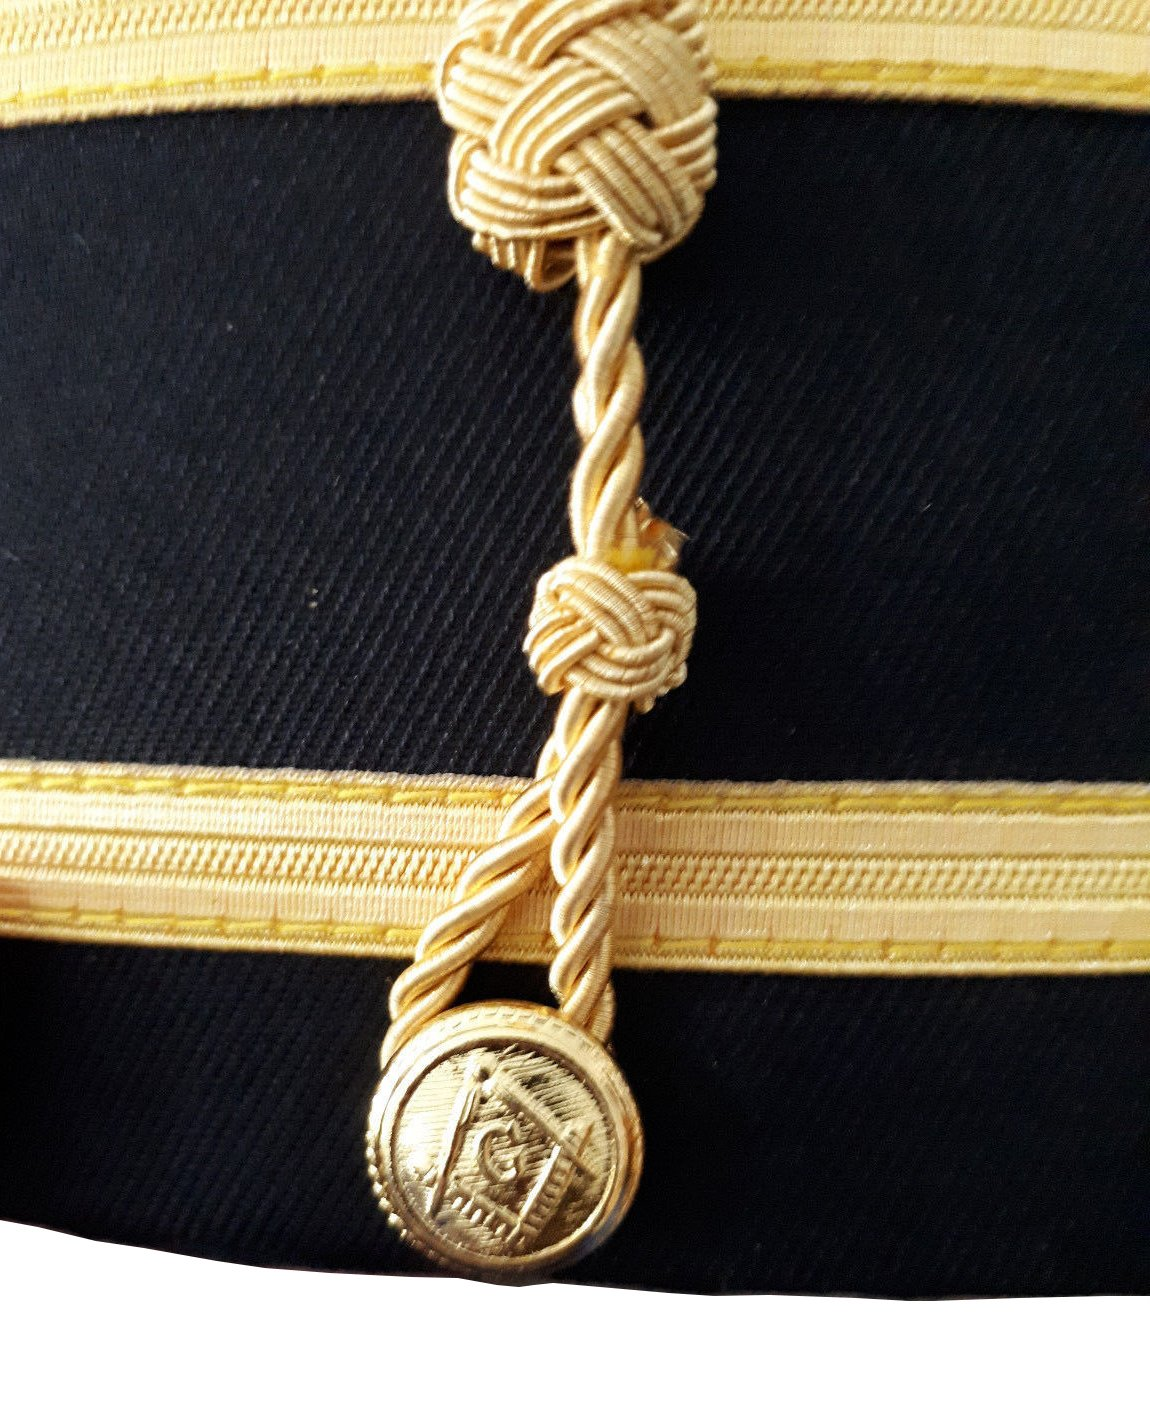 Masonic Knights Templar Red Cross Black Cap with Gold Braid - Bricks Masons